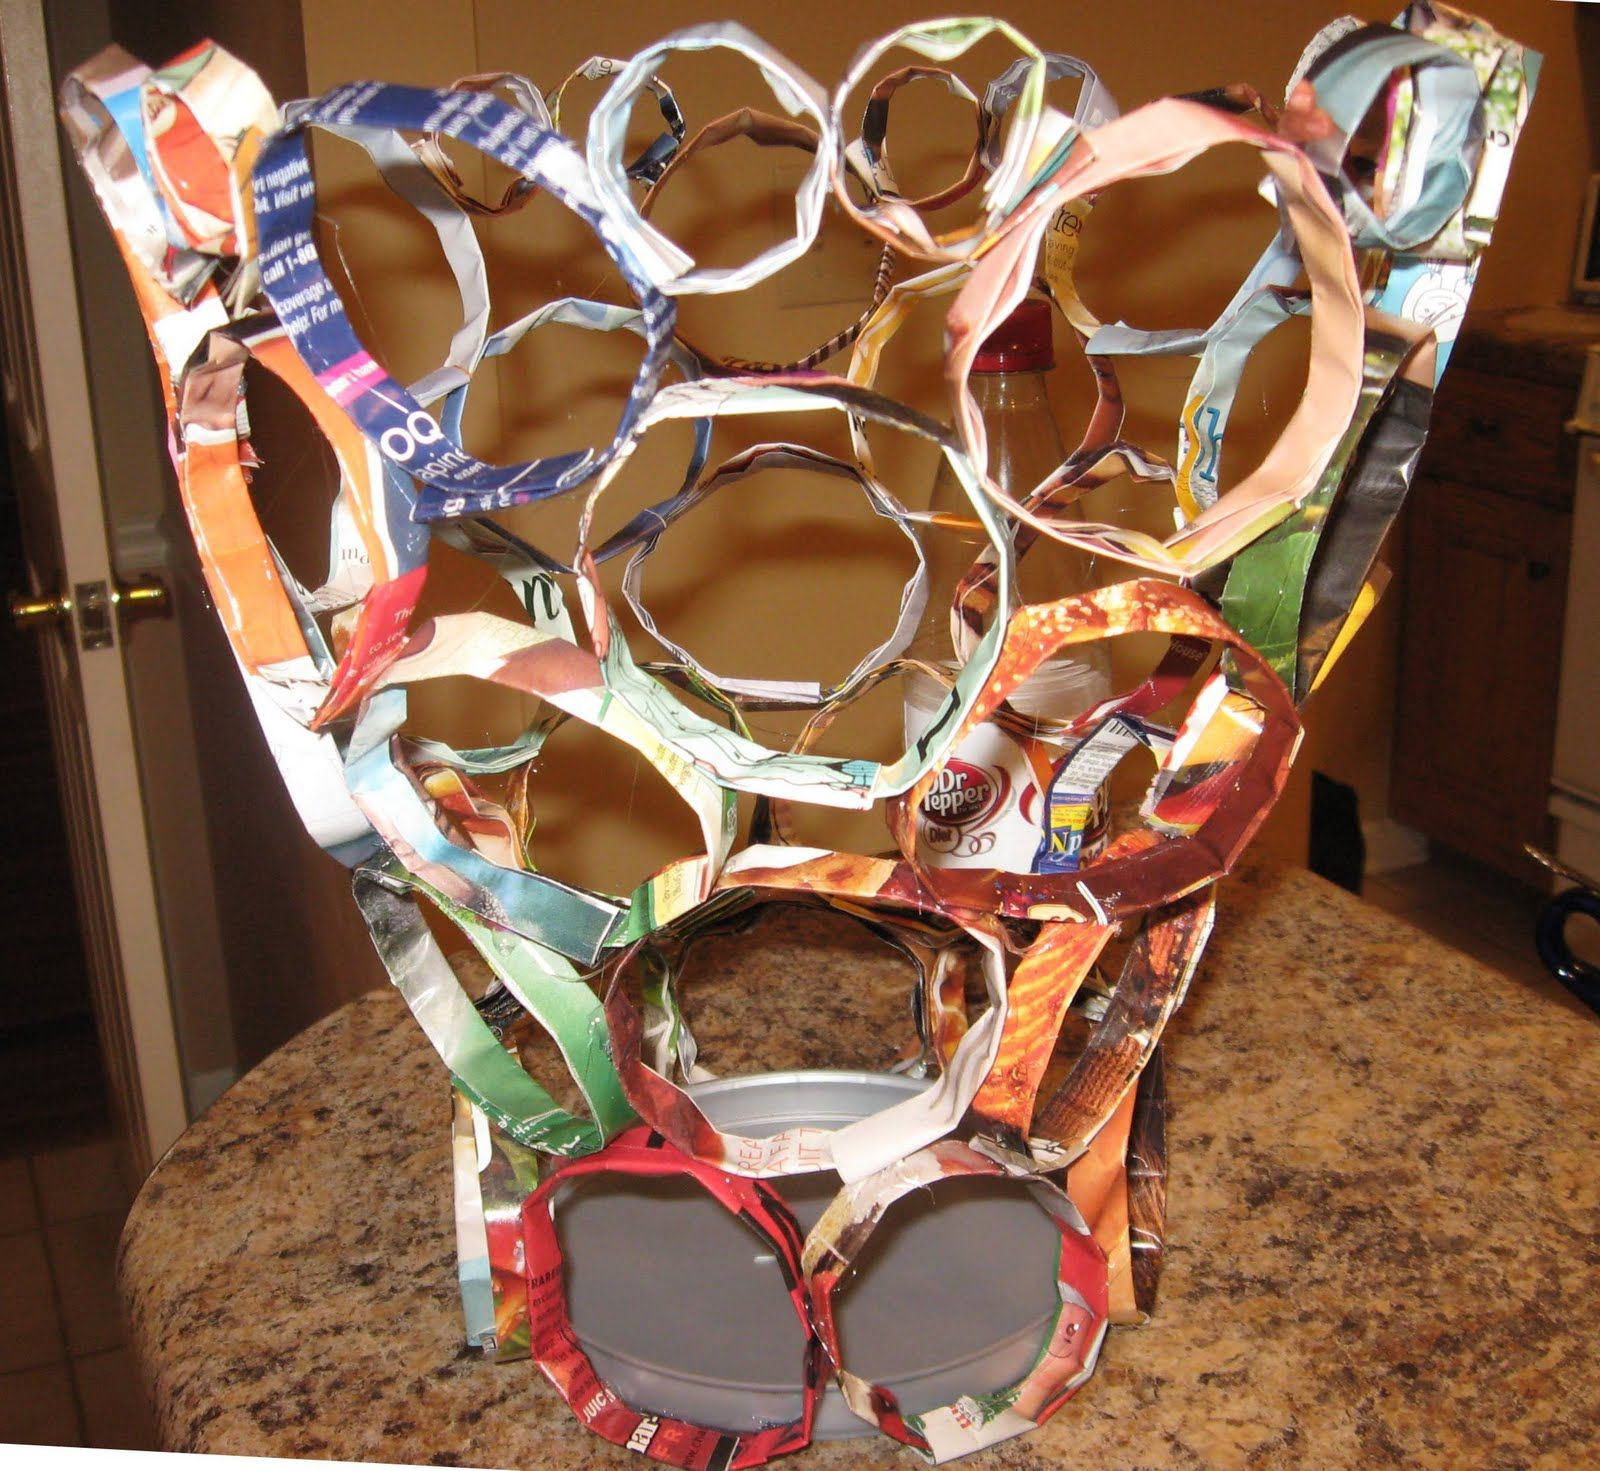 Art projects for teens creative recycled projects for Cool recycled stuff